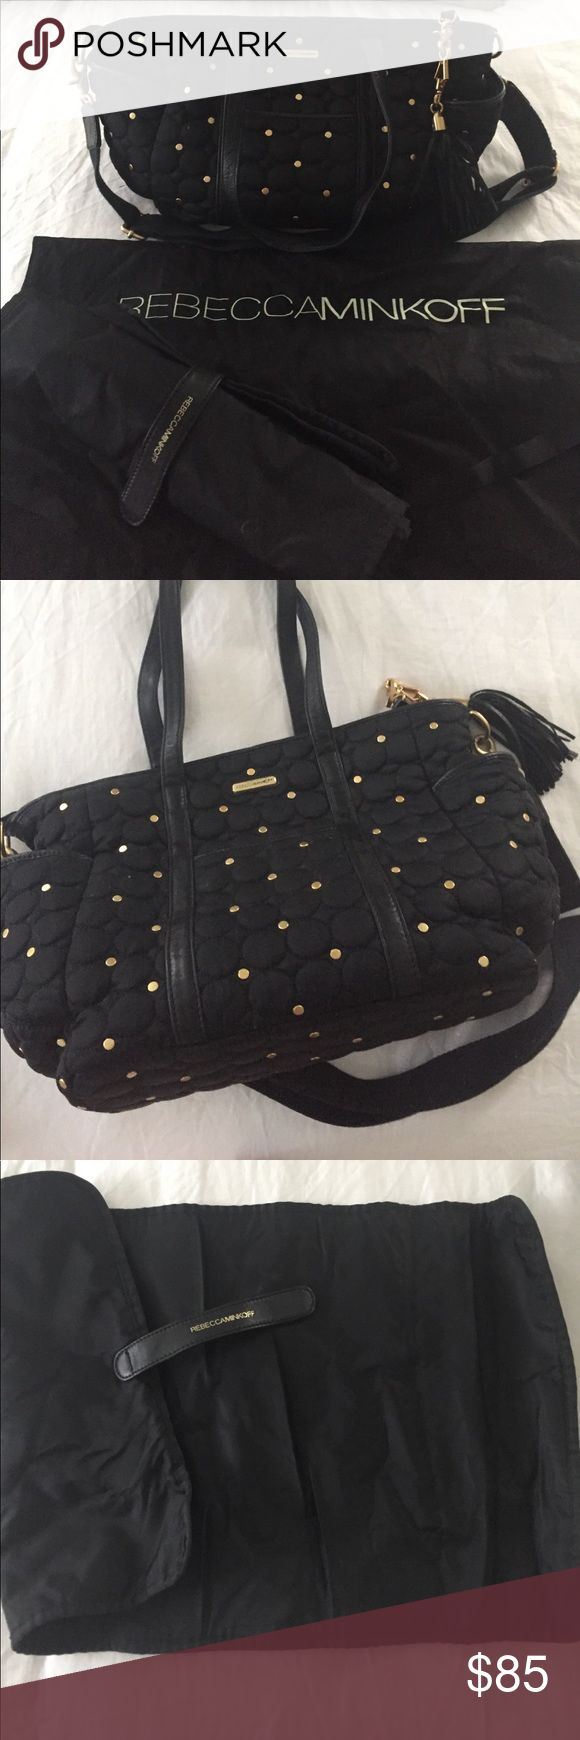 Diaper Bag Rebecca Minkoff In excellent used condition. Black quilted nylon with gold studs leather handles and tassel. Comfortable cross strap.comes with changing pad and dust bag. Adorable and amazing quality. Rebecca Minkoff Bags Baby Bags